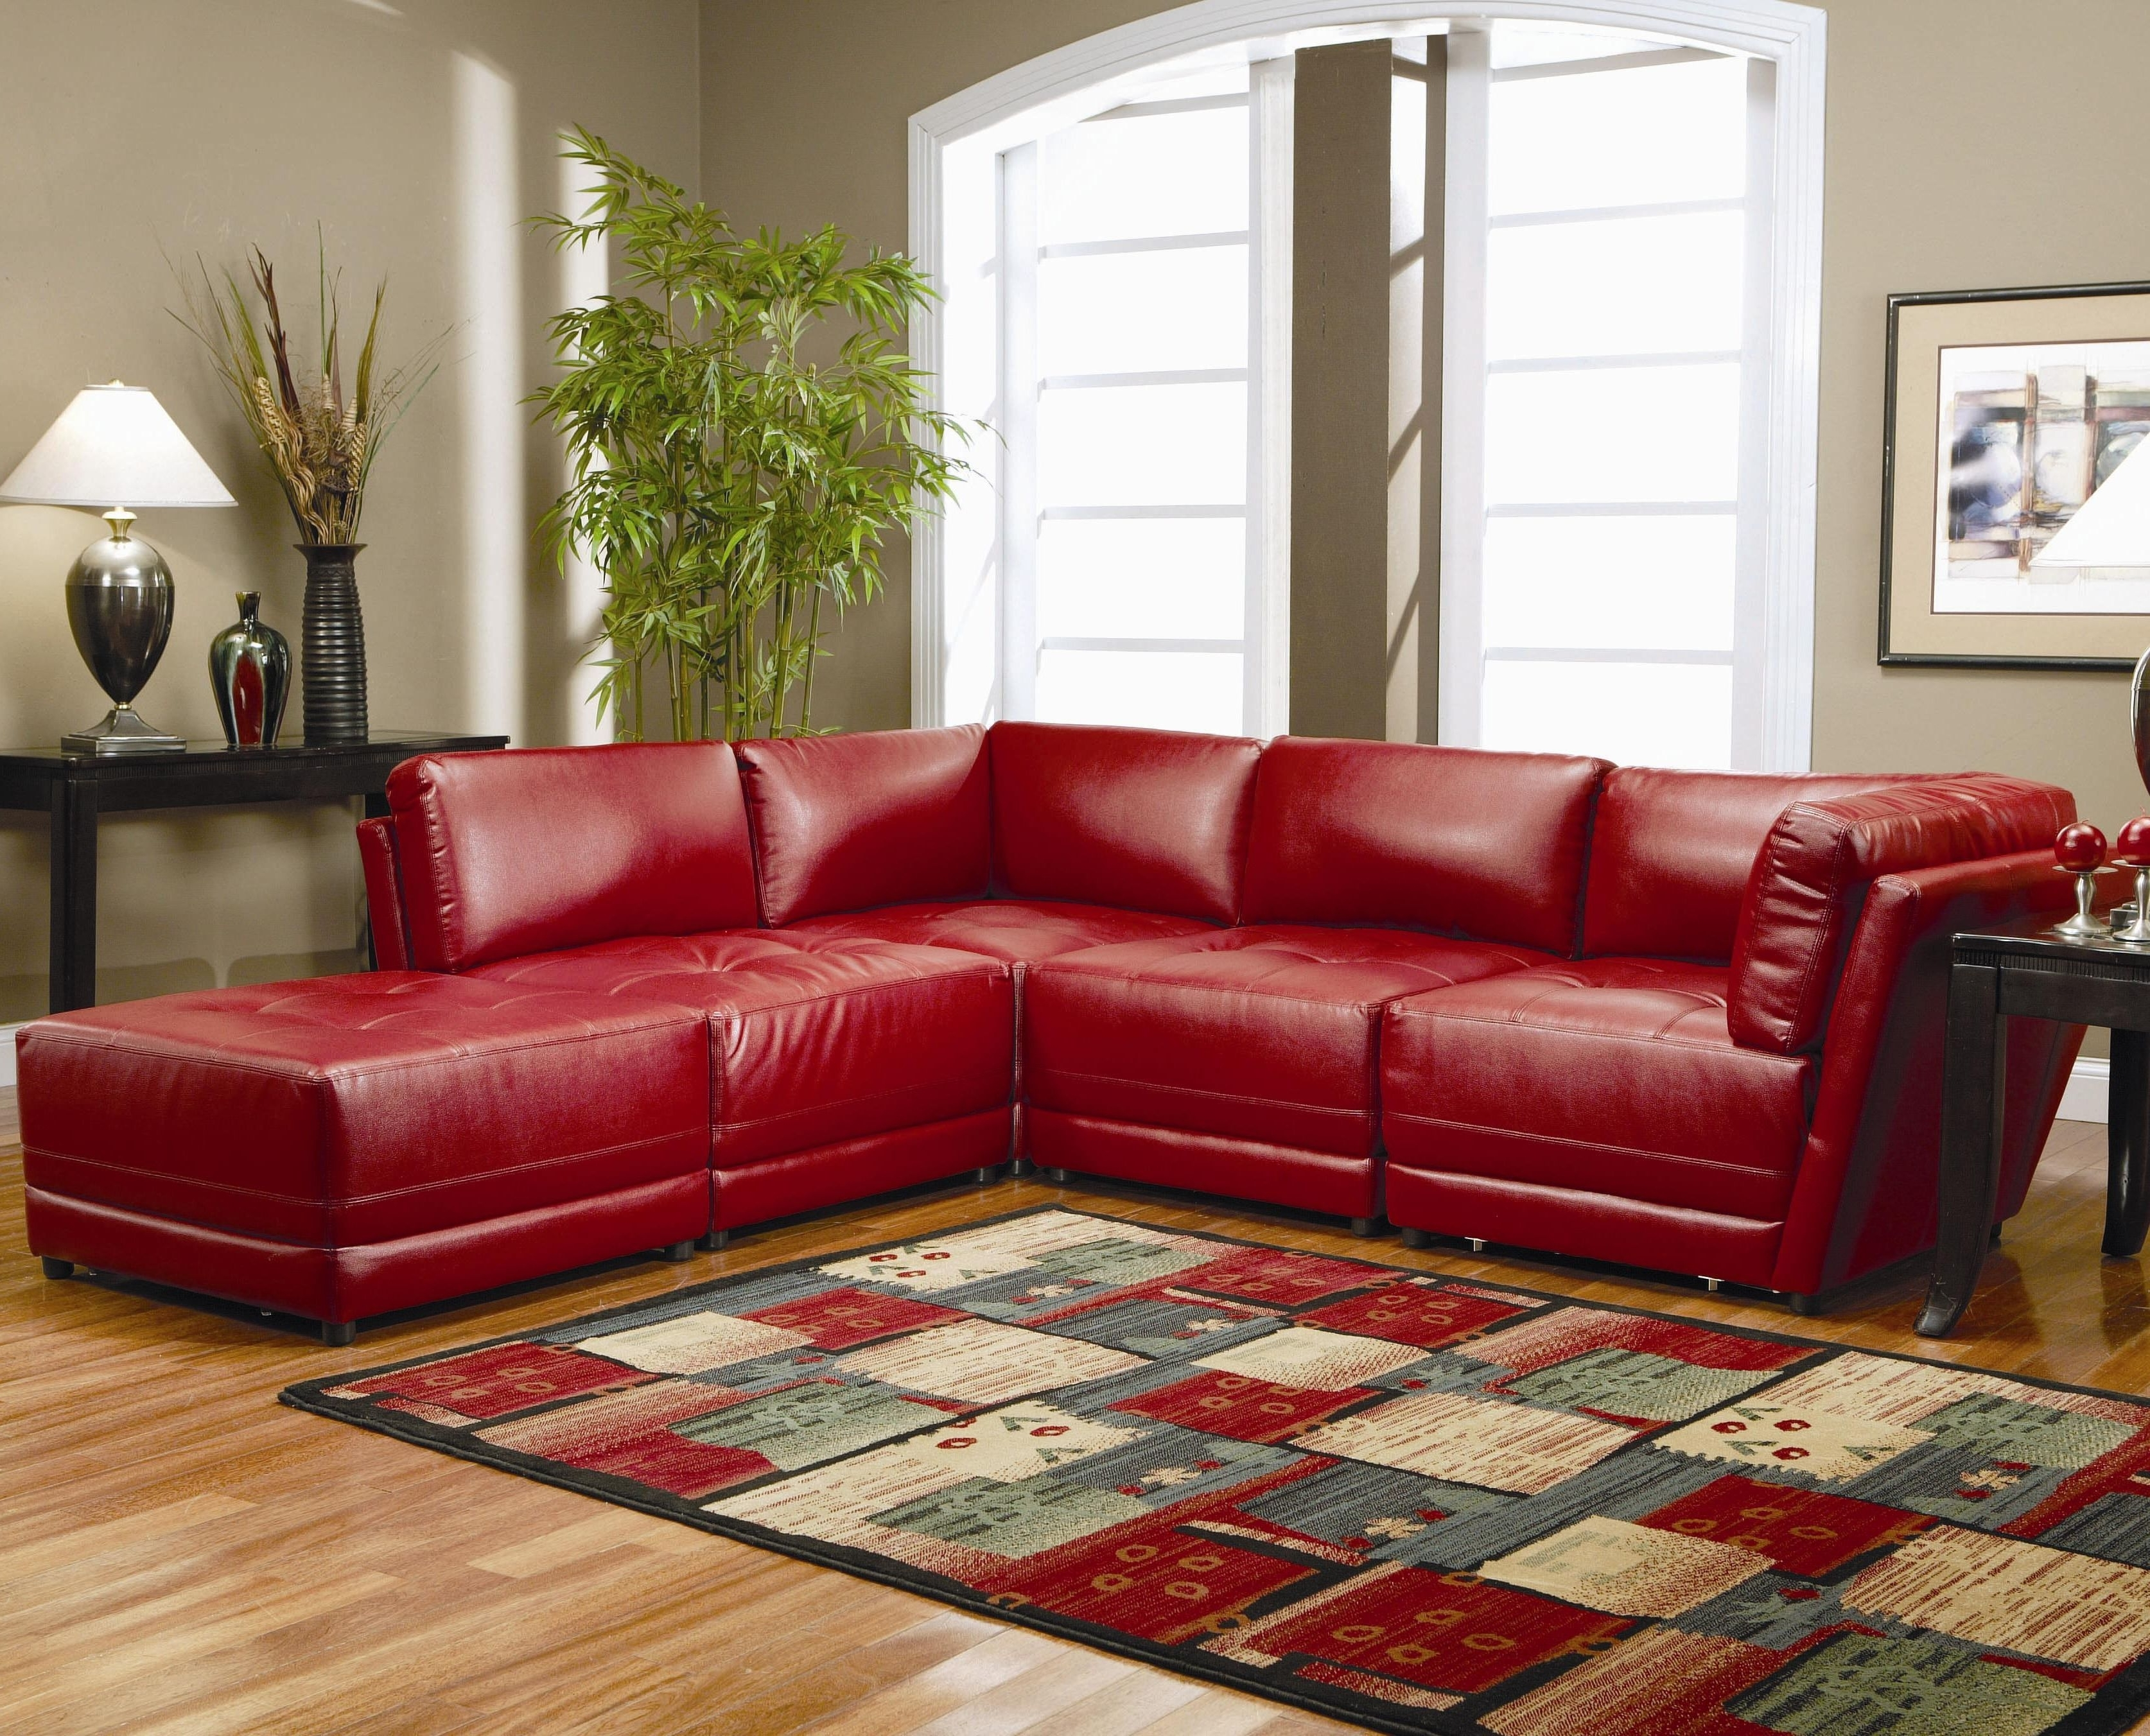 Red Sectional Sofas With Ottoman With Regard To Current Sofas : Red Sectional Cheap Sectional Sofas U Shaped Couch (View 18 of 20)